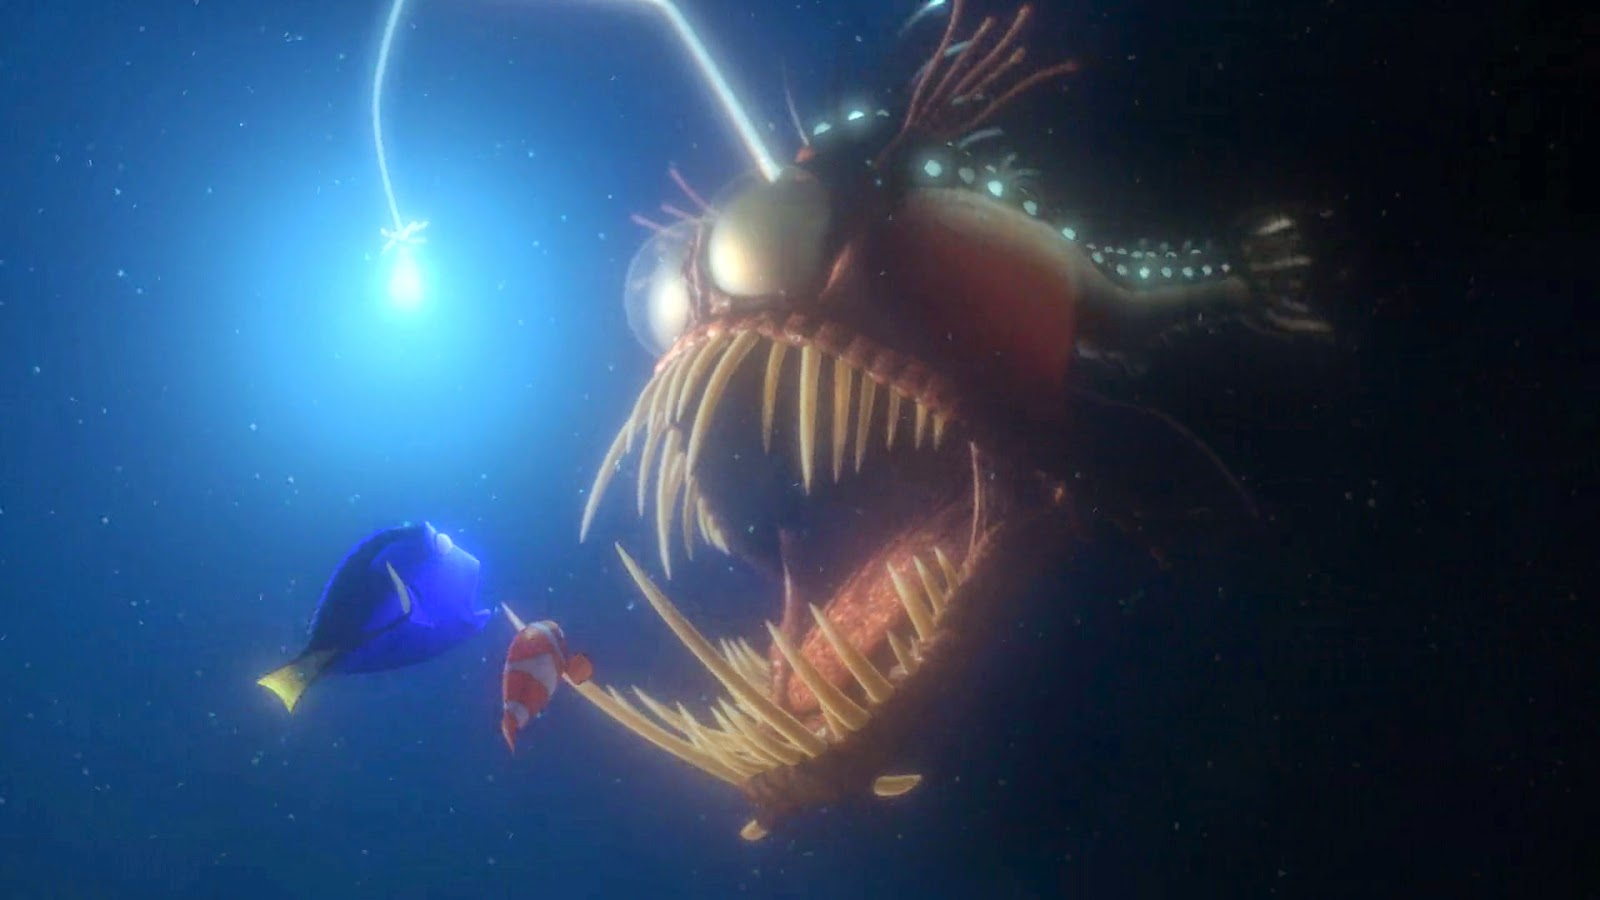 dan the pixar fan finding nemo anglerfish light up